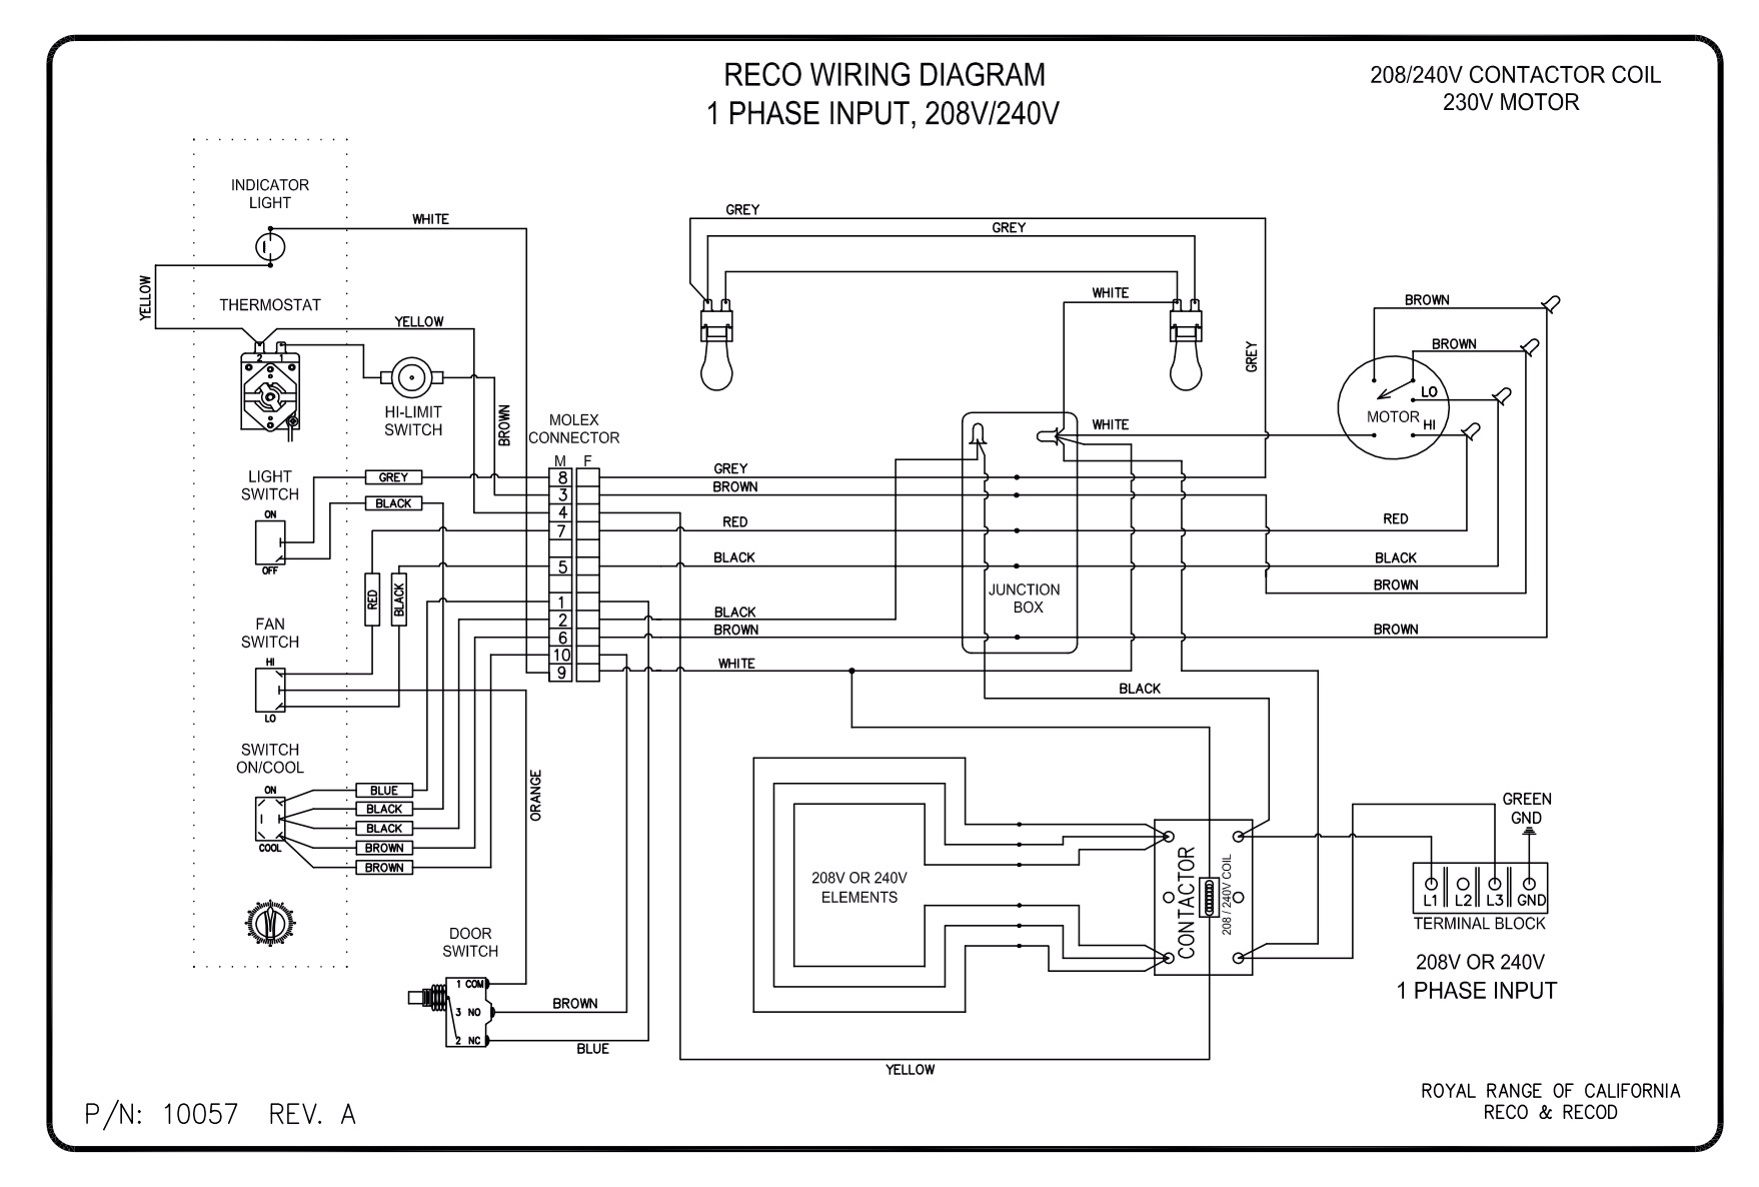 RECO1 wiring diagrams royal range of california 240v 1 phase wiring diagram at gsmx.co